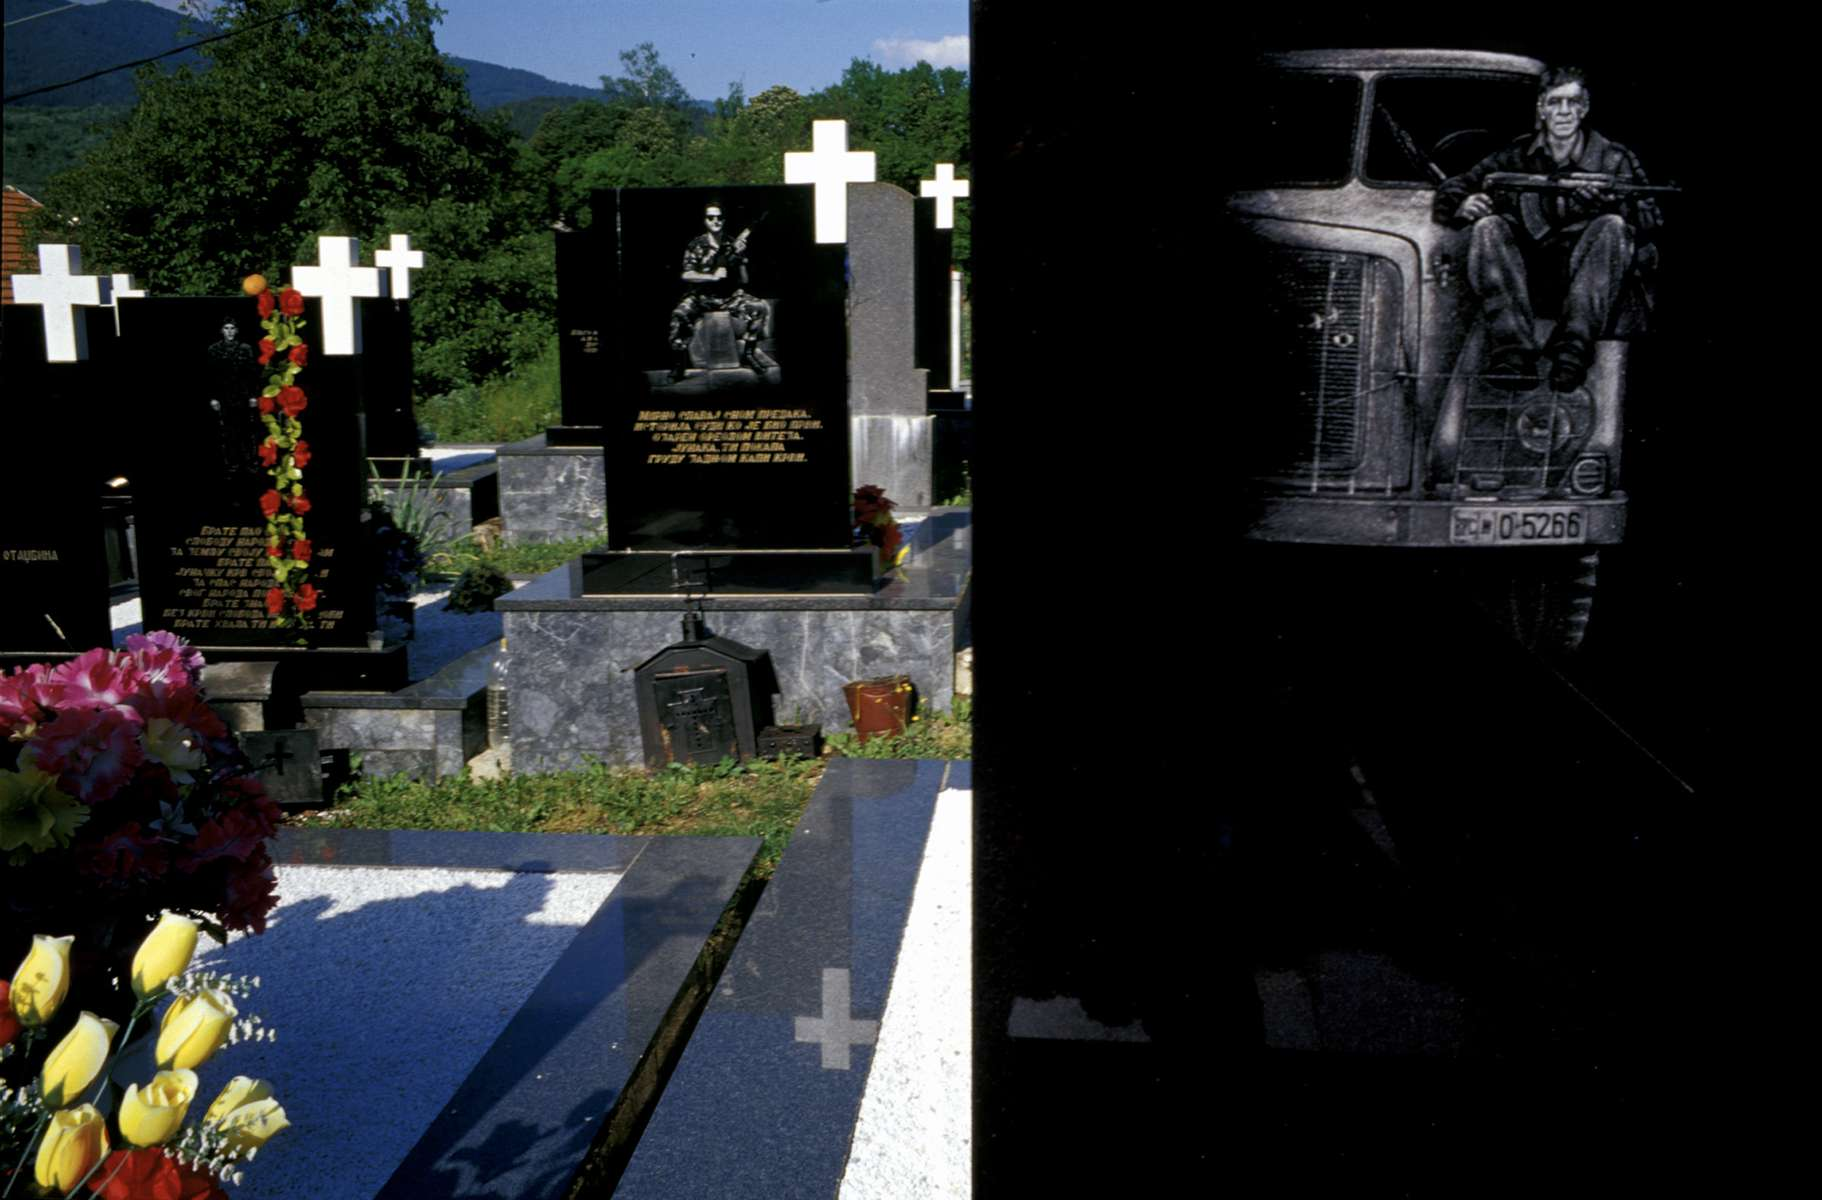 Laser-engraved headstones of Bosnian Serb soldiers who were killed during the war. The cemetery is in Visegrad, in eastern Bosnia, a town where some 2,000 Muslim men and boys were killed by Serbs in the spring of 1992. Eight years after the end of the war, the former Muslim-majority town remains overwhelmingly Serb.